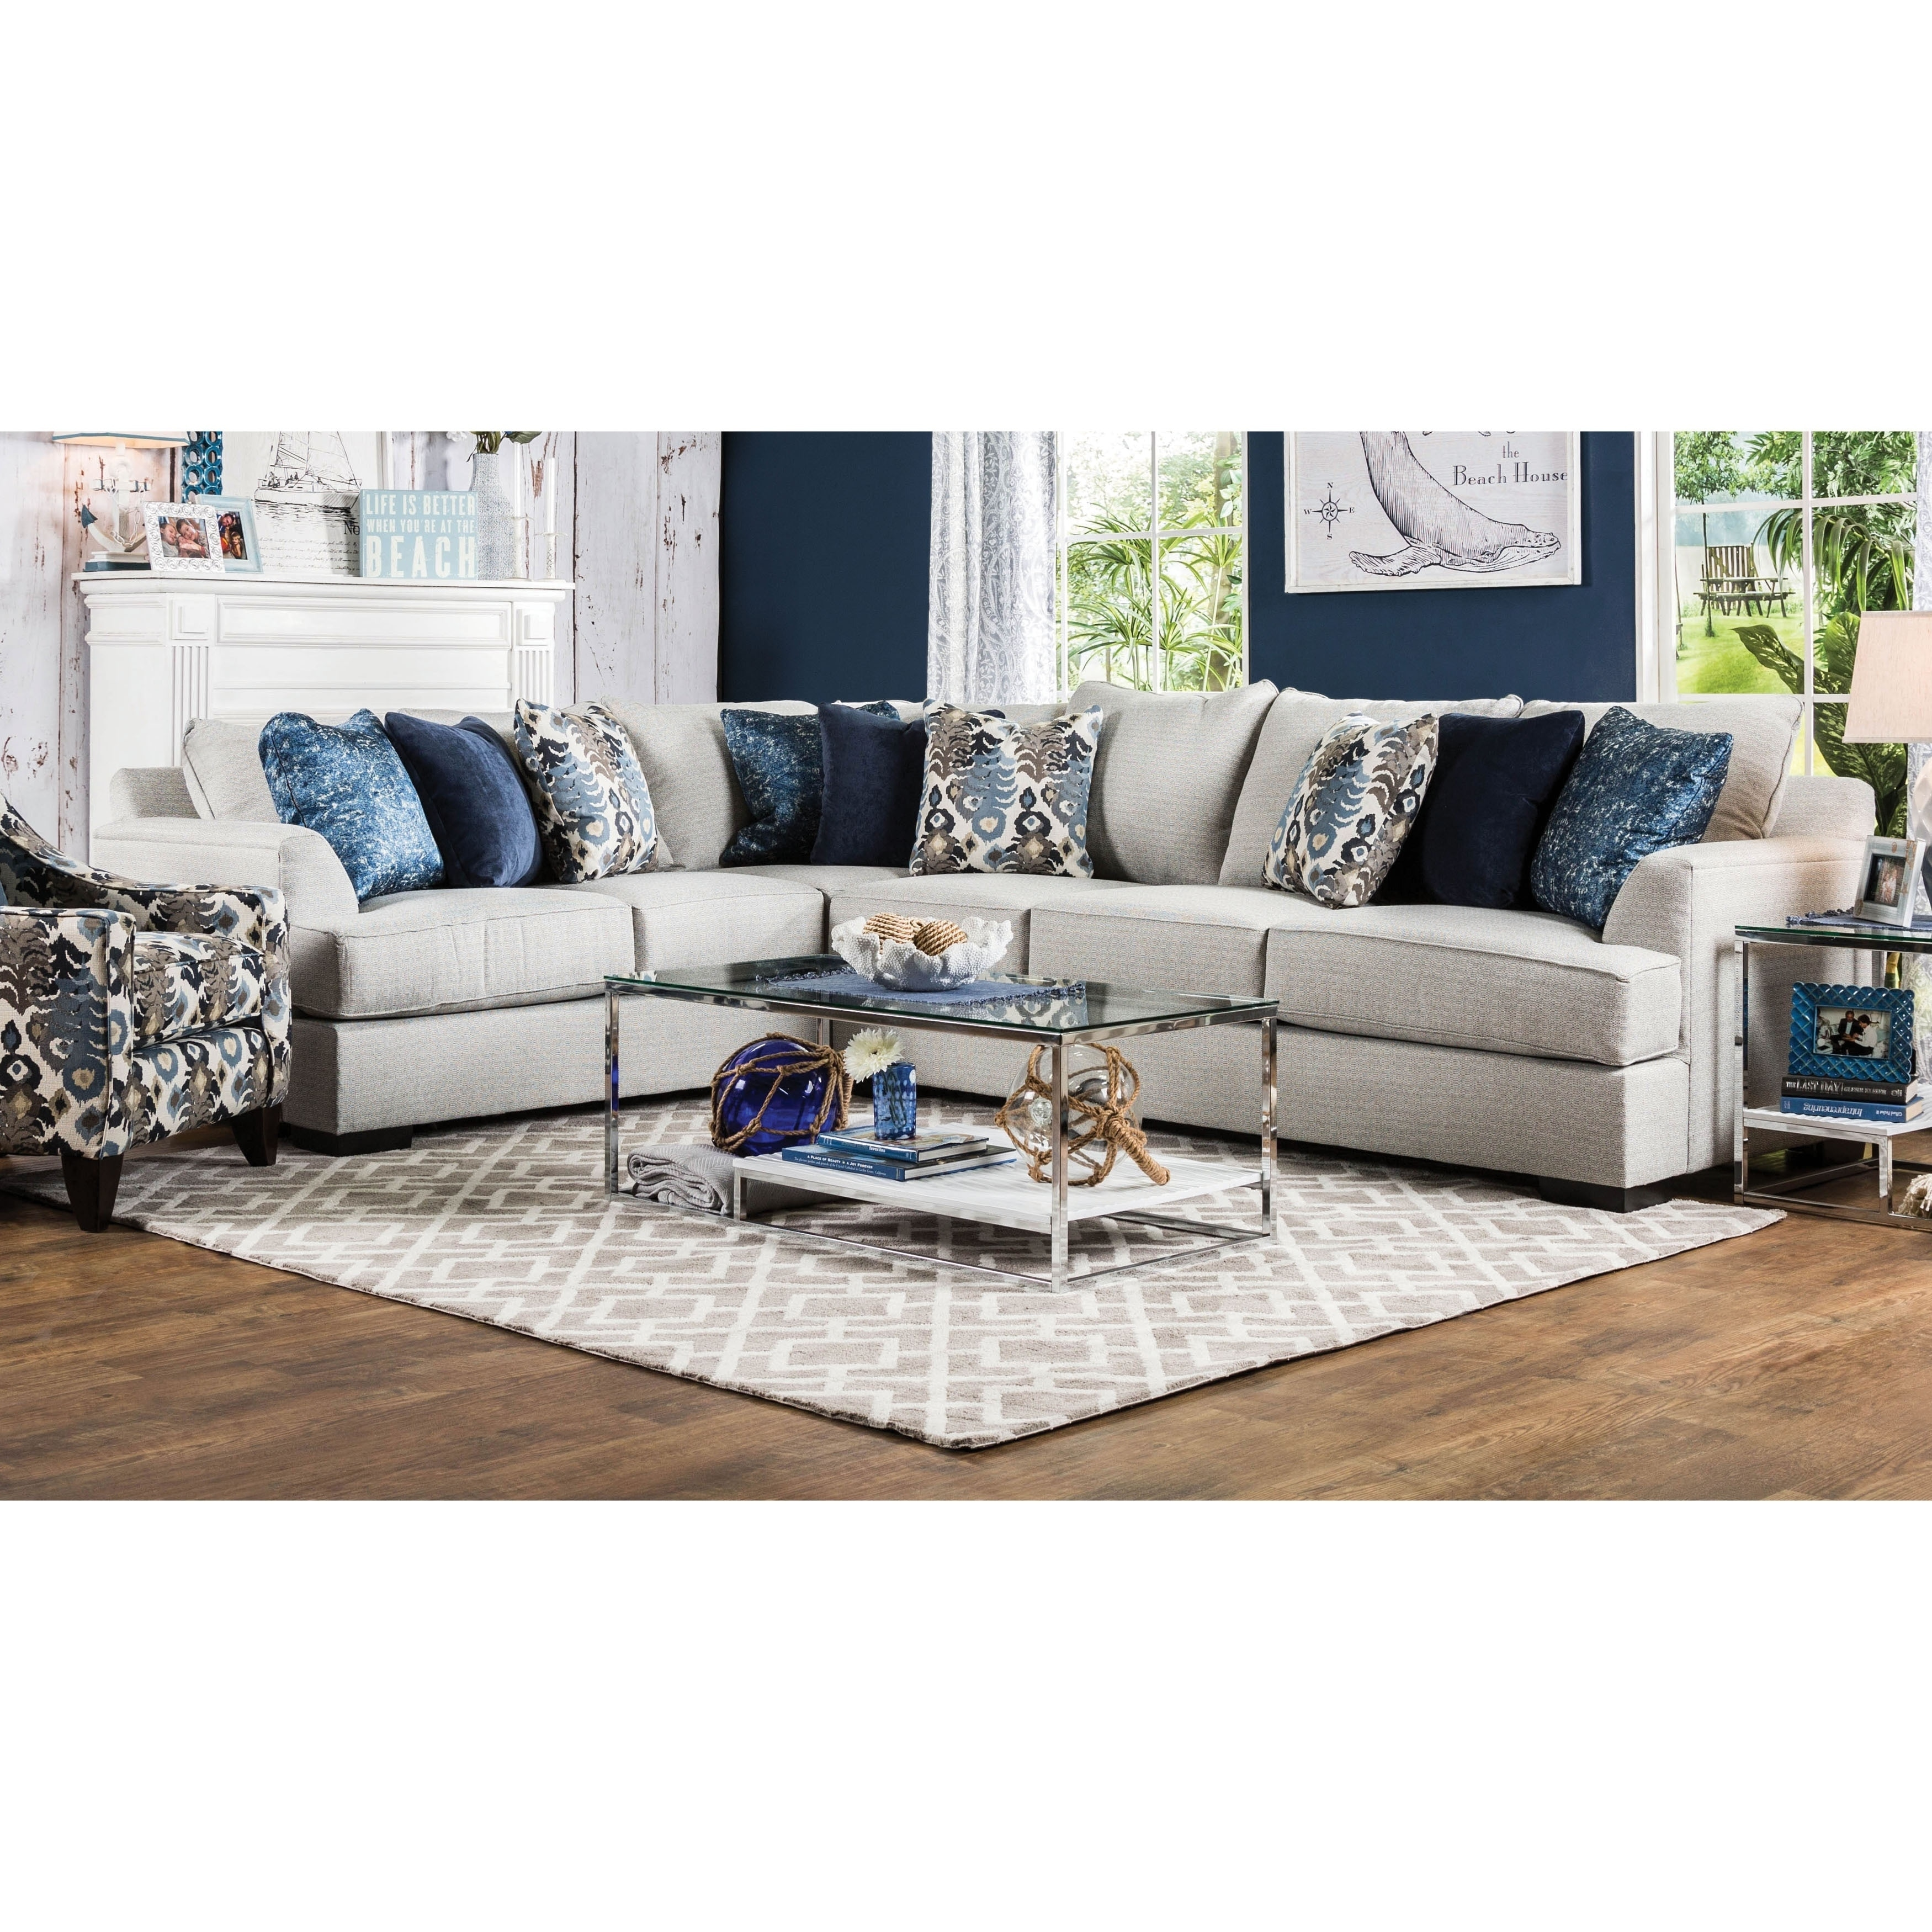 Furniture of America Rosille Contemporary Light Grey L-shaped Sectional